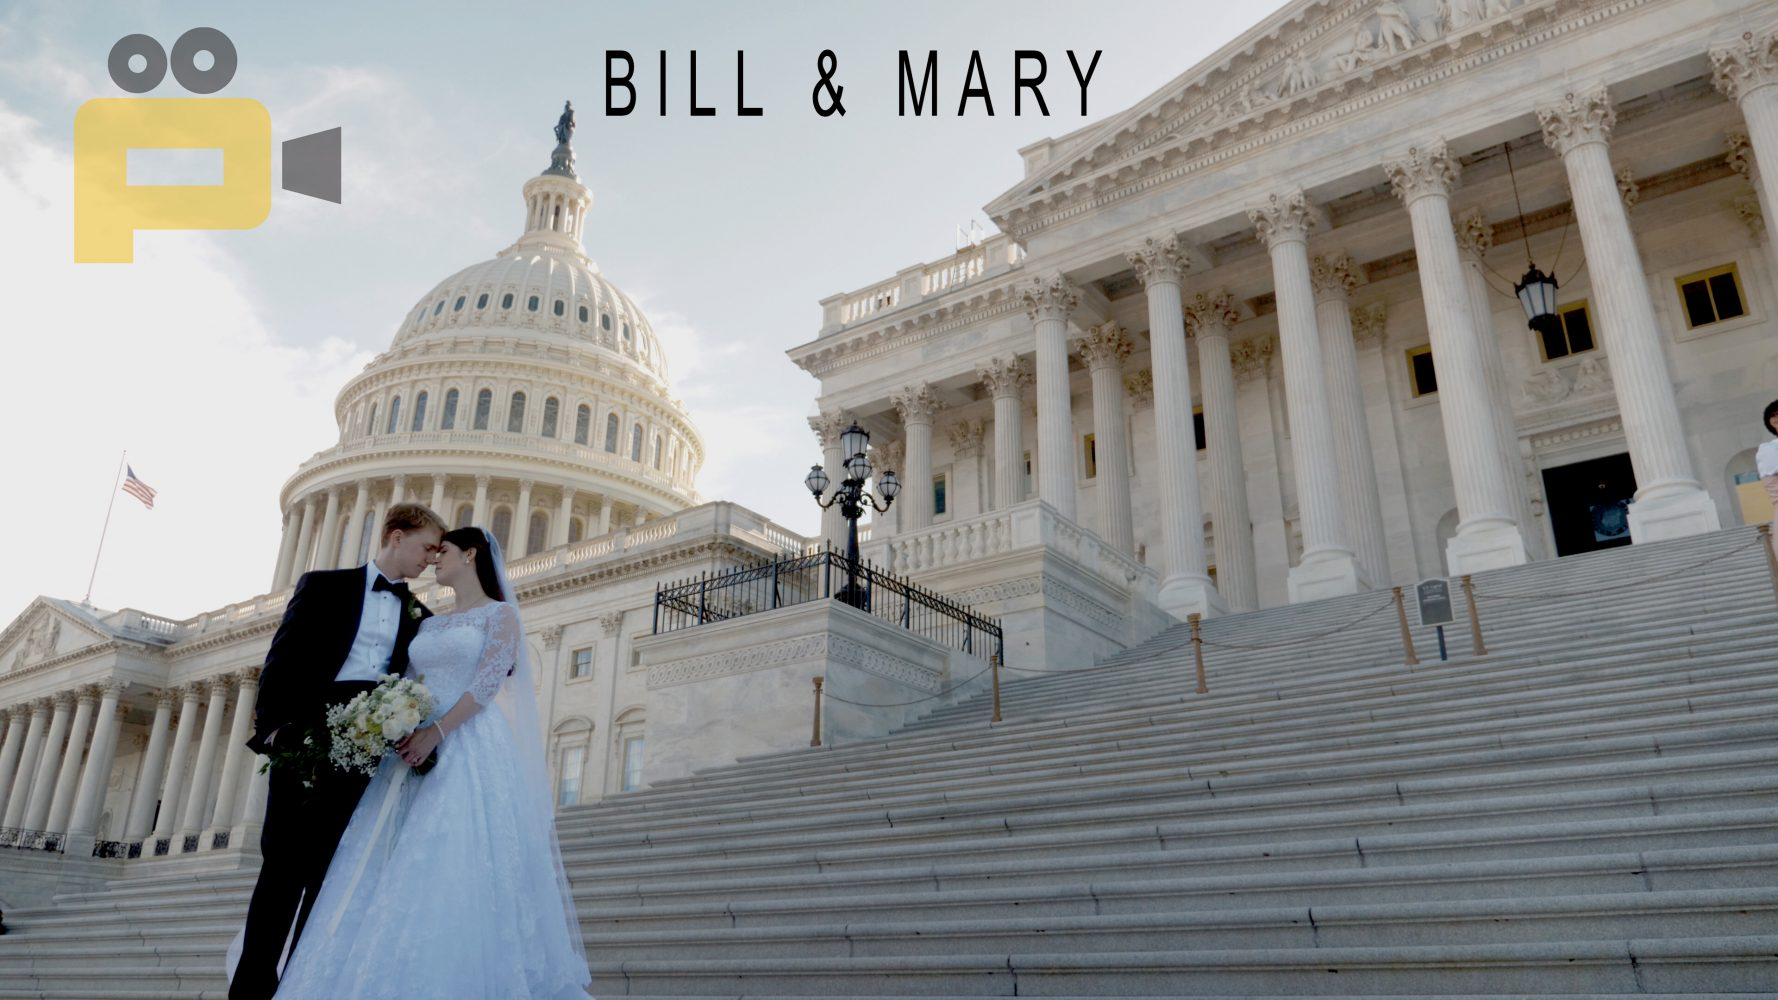 Mary + Bill | Washington D.C., District of Columbia | The Army & Navy Club